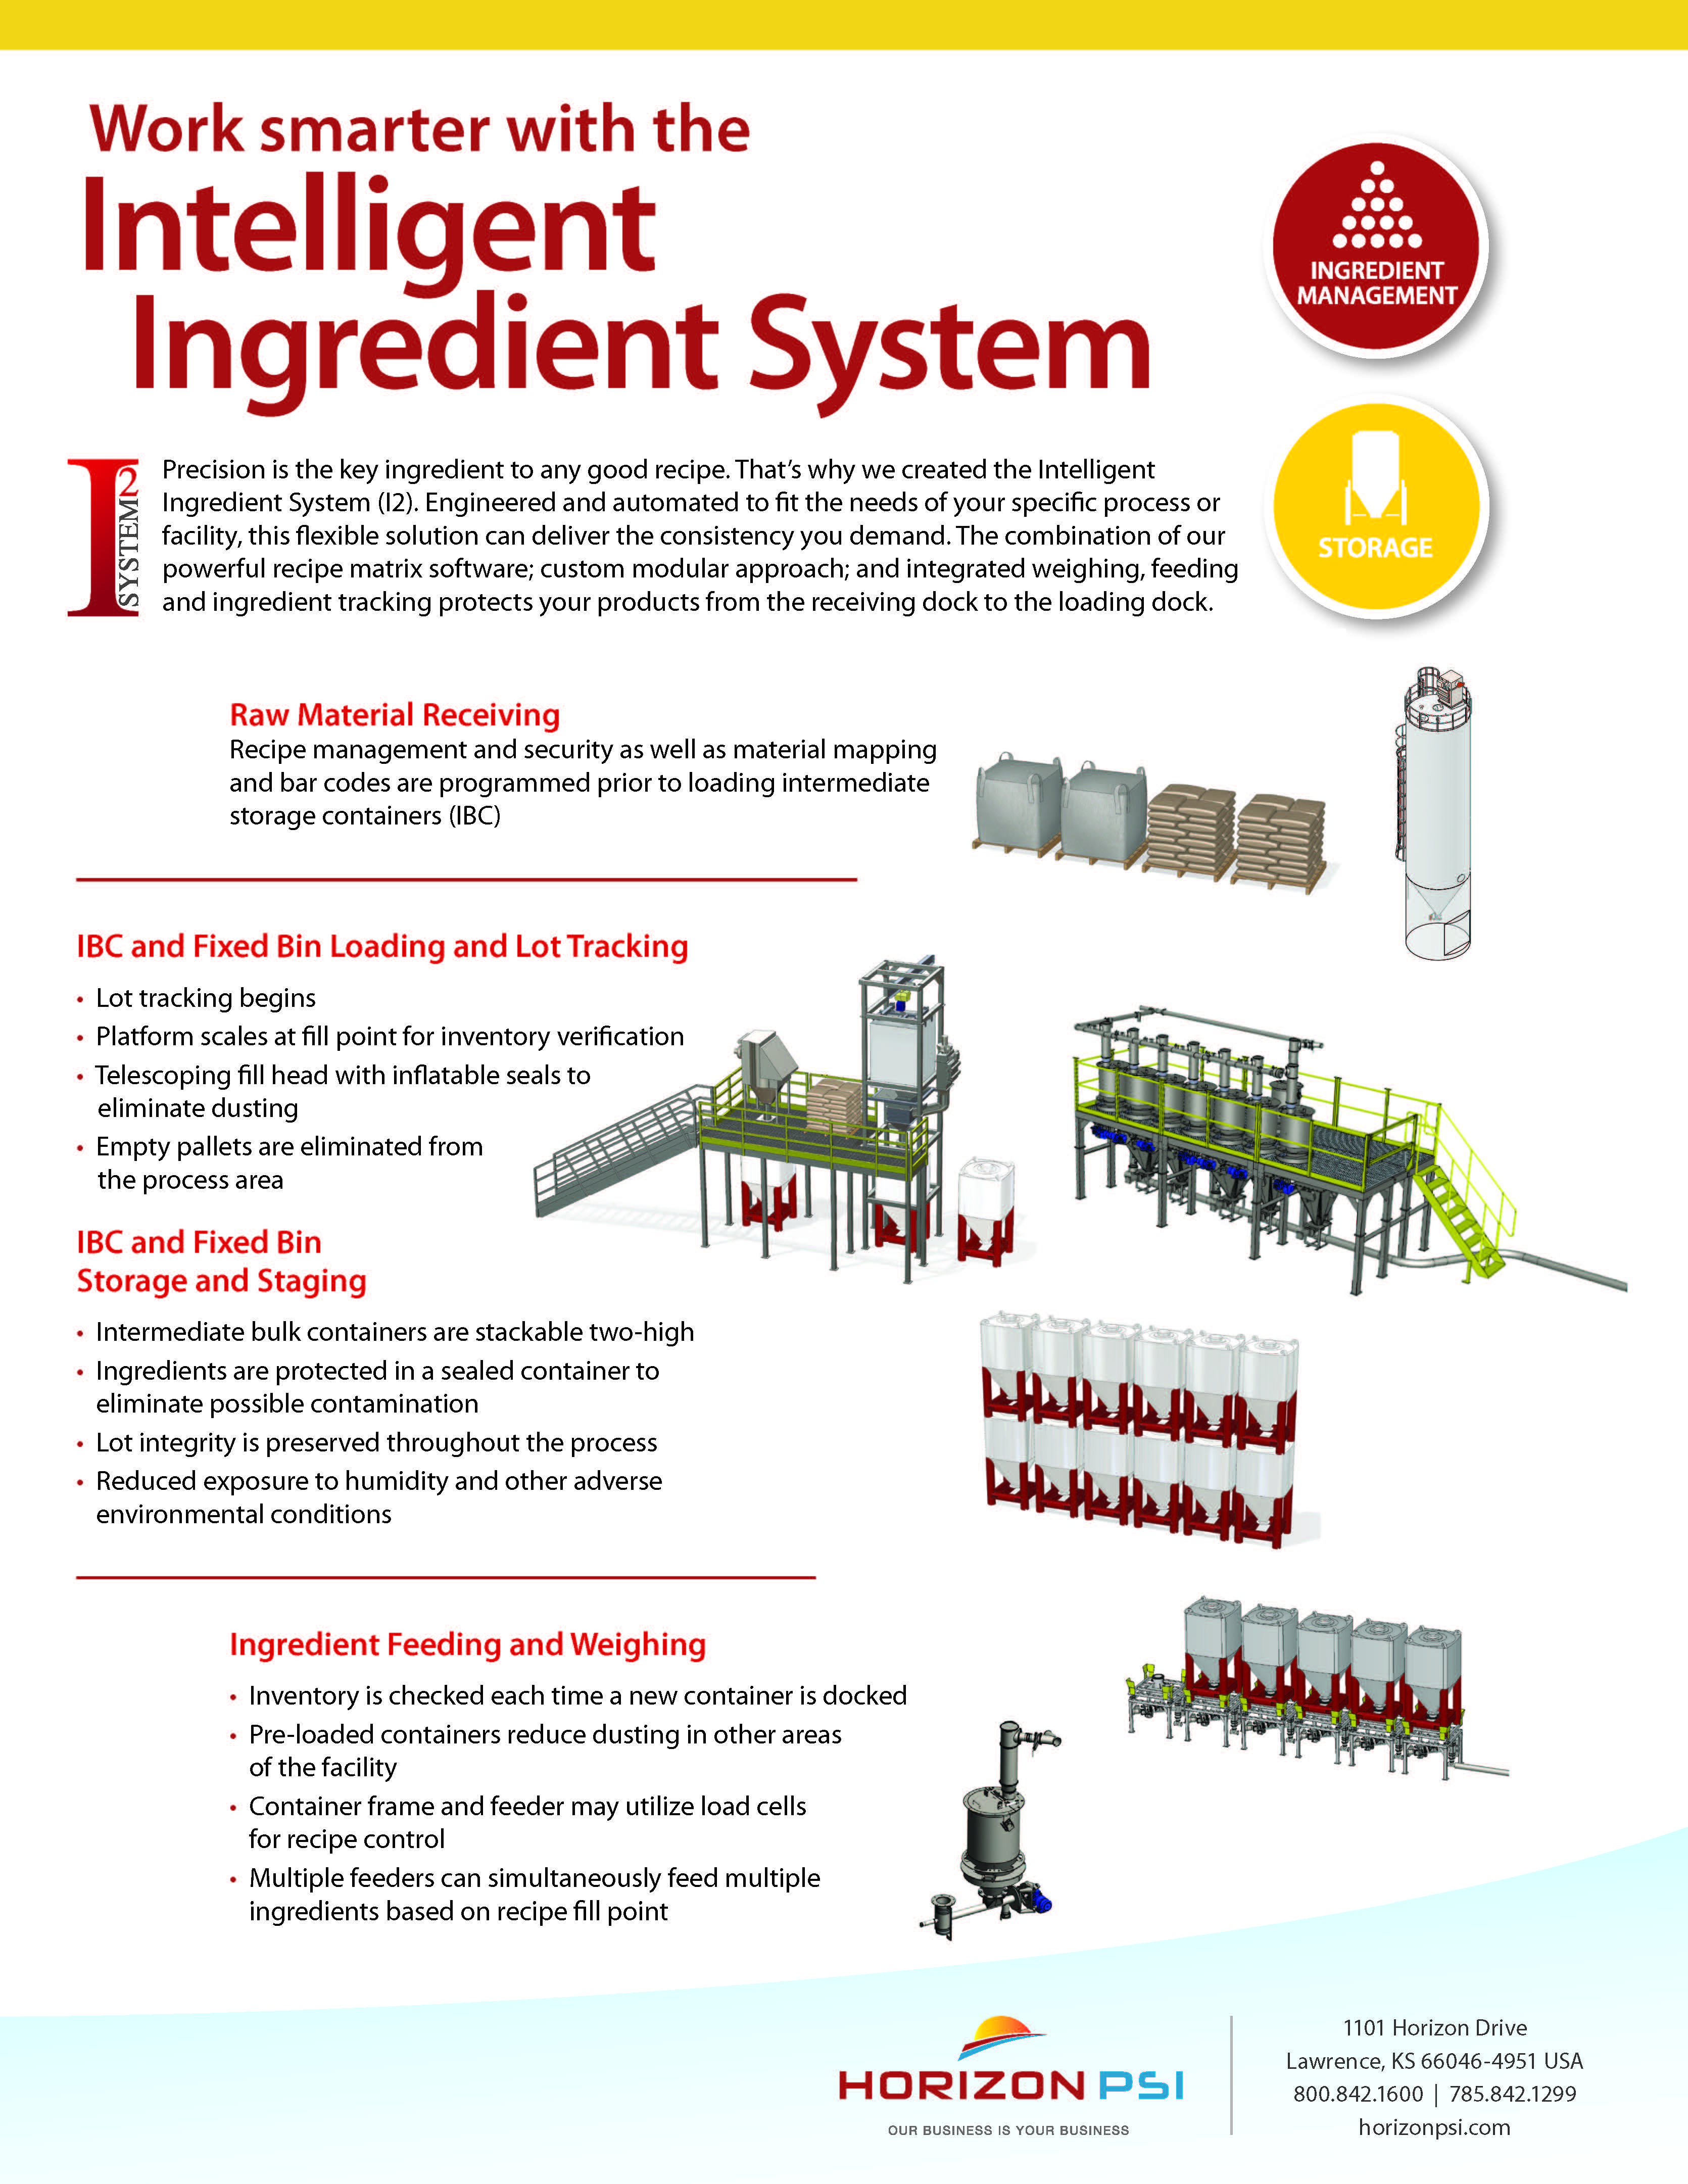 Image of Intelligent Ingredient System Product Sheet